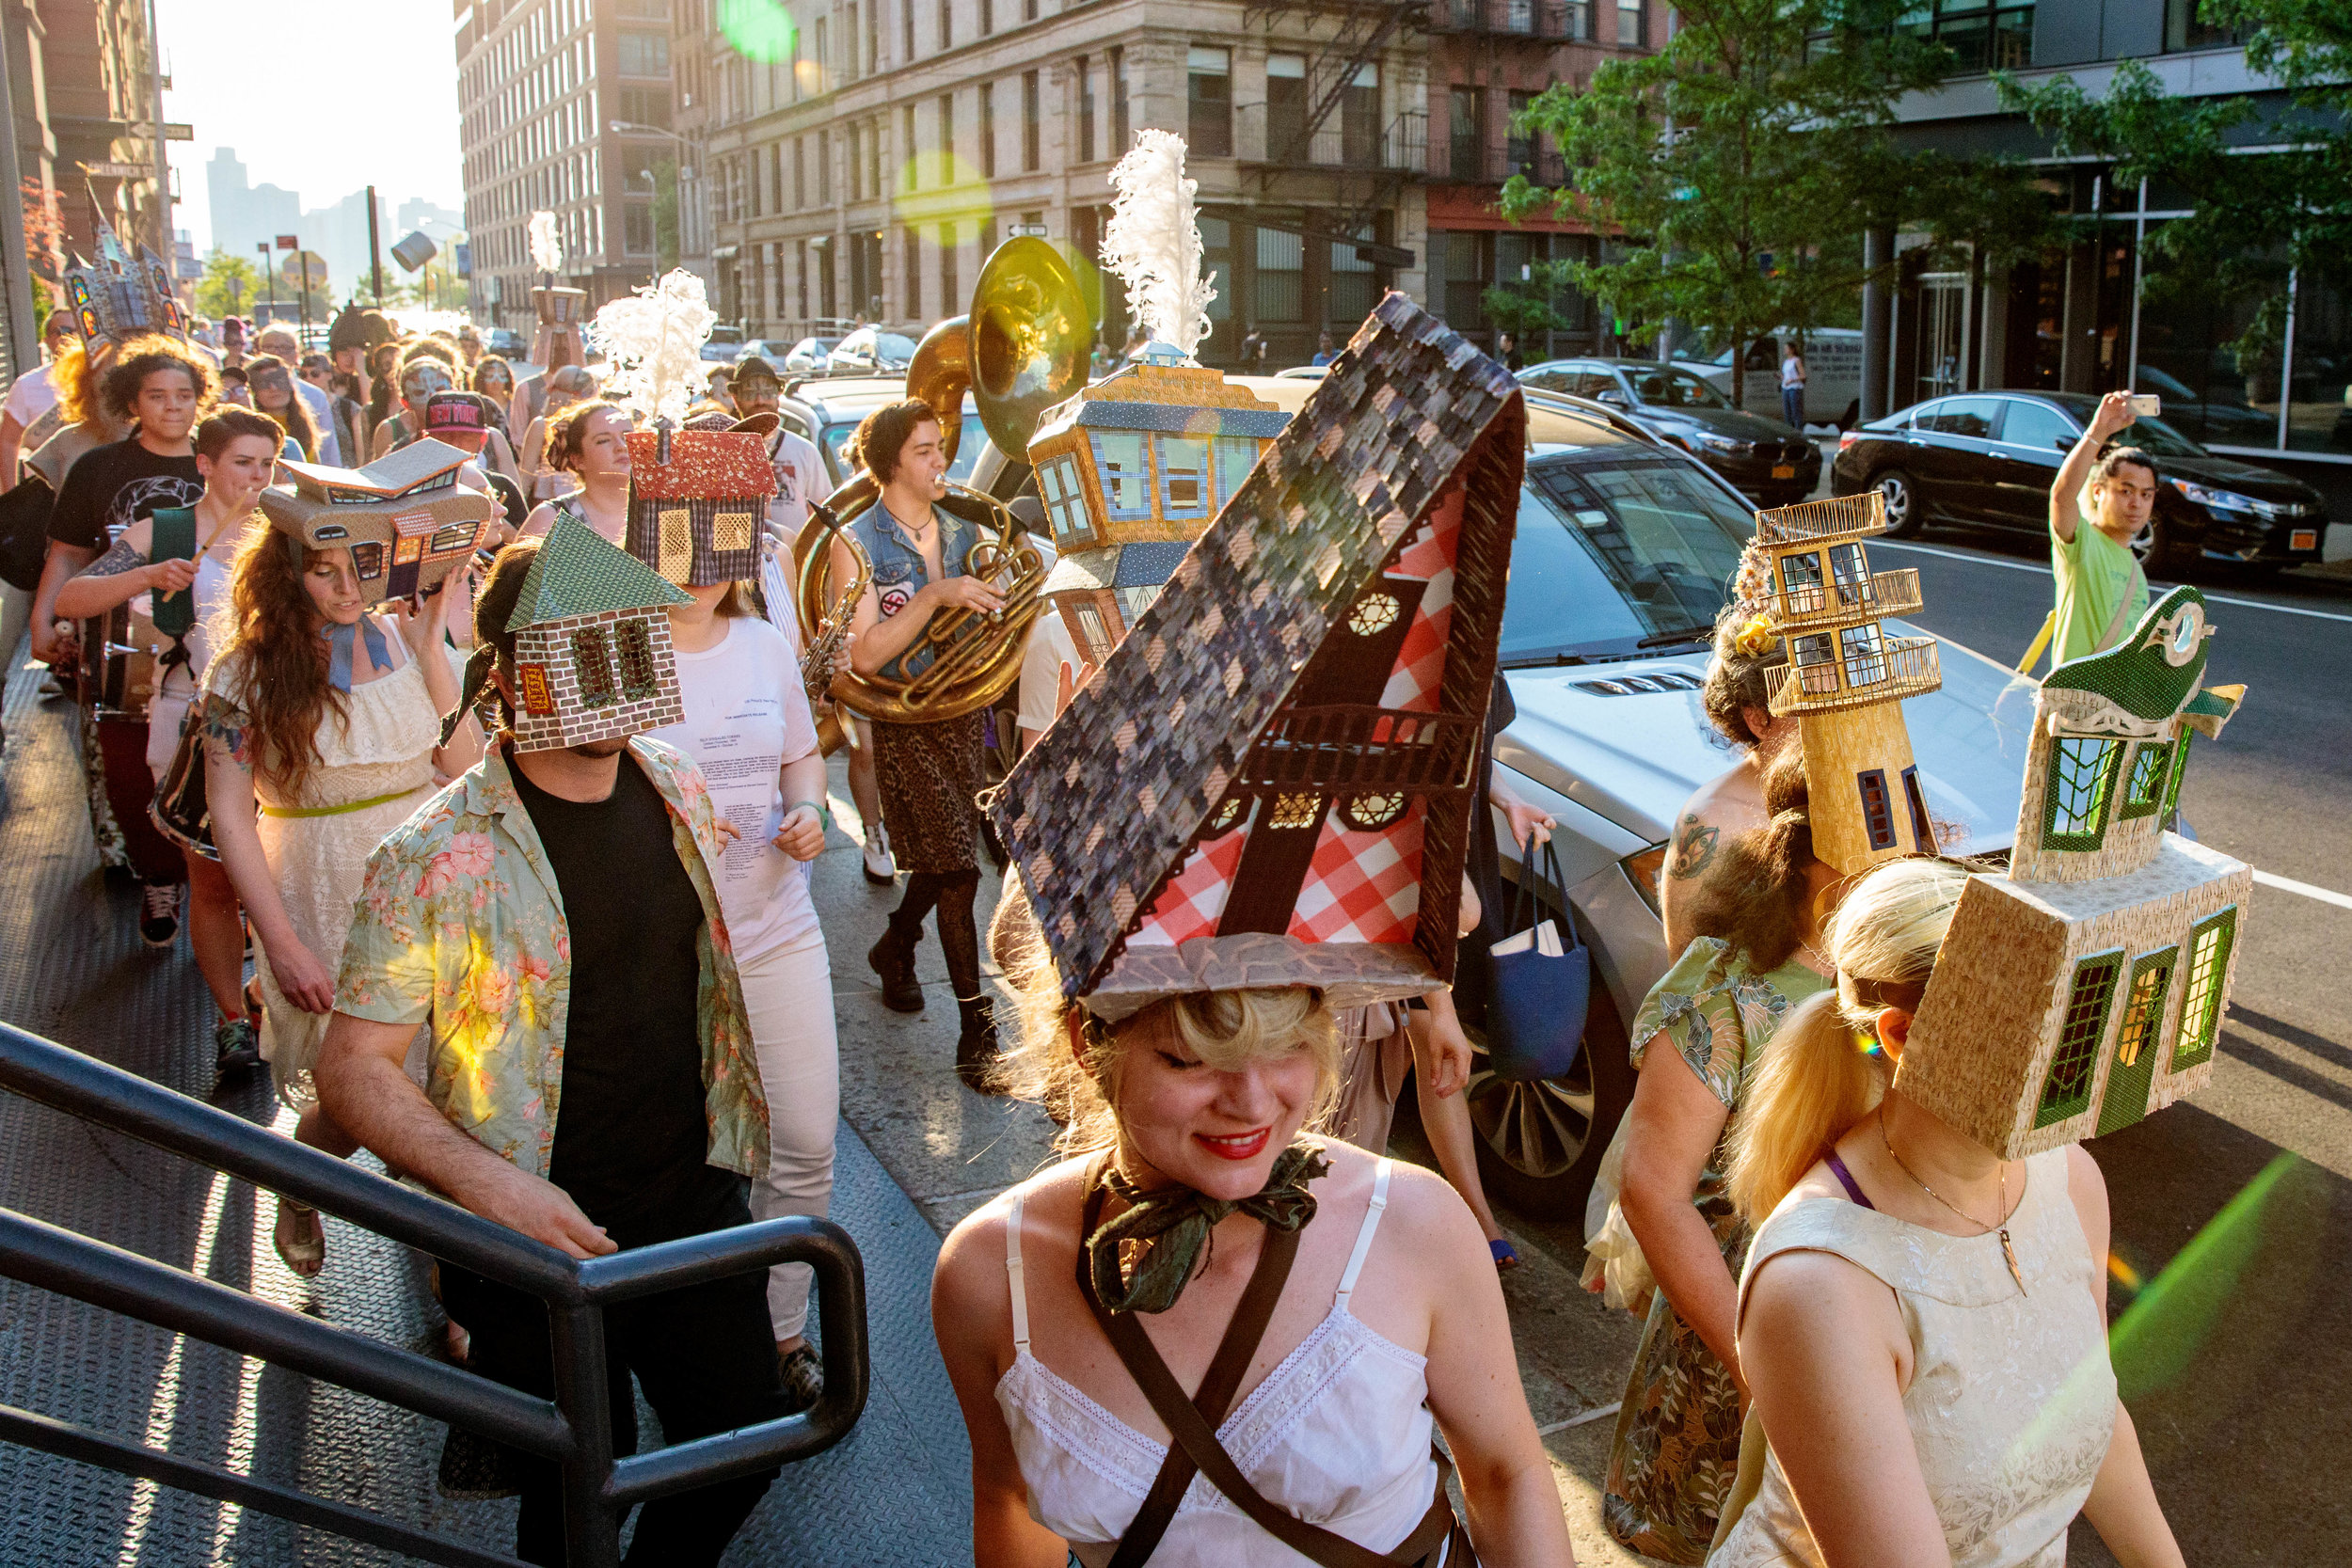 Laura McMillian ,  House Party: A Parade to Find Home , 2017 (photography by Tod Seelie)